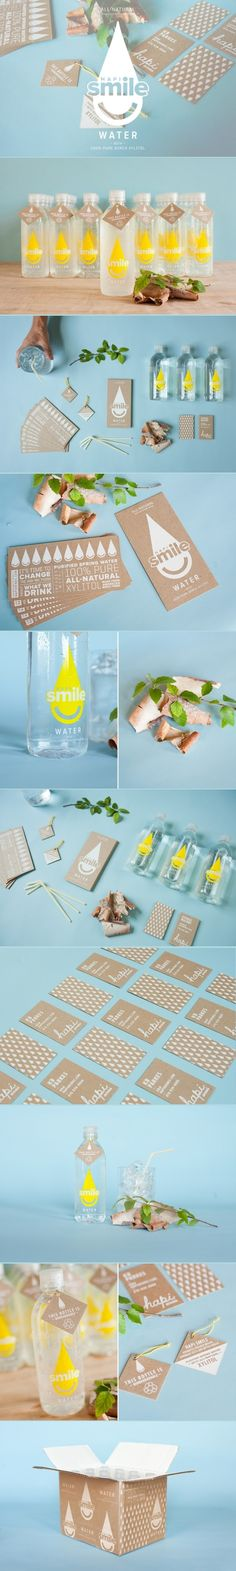 Hapi Smile Water. Water that brings happy smile to your face. #branding #identity #design